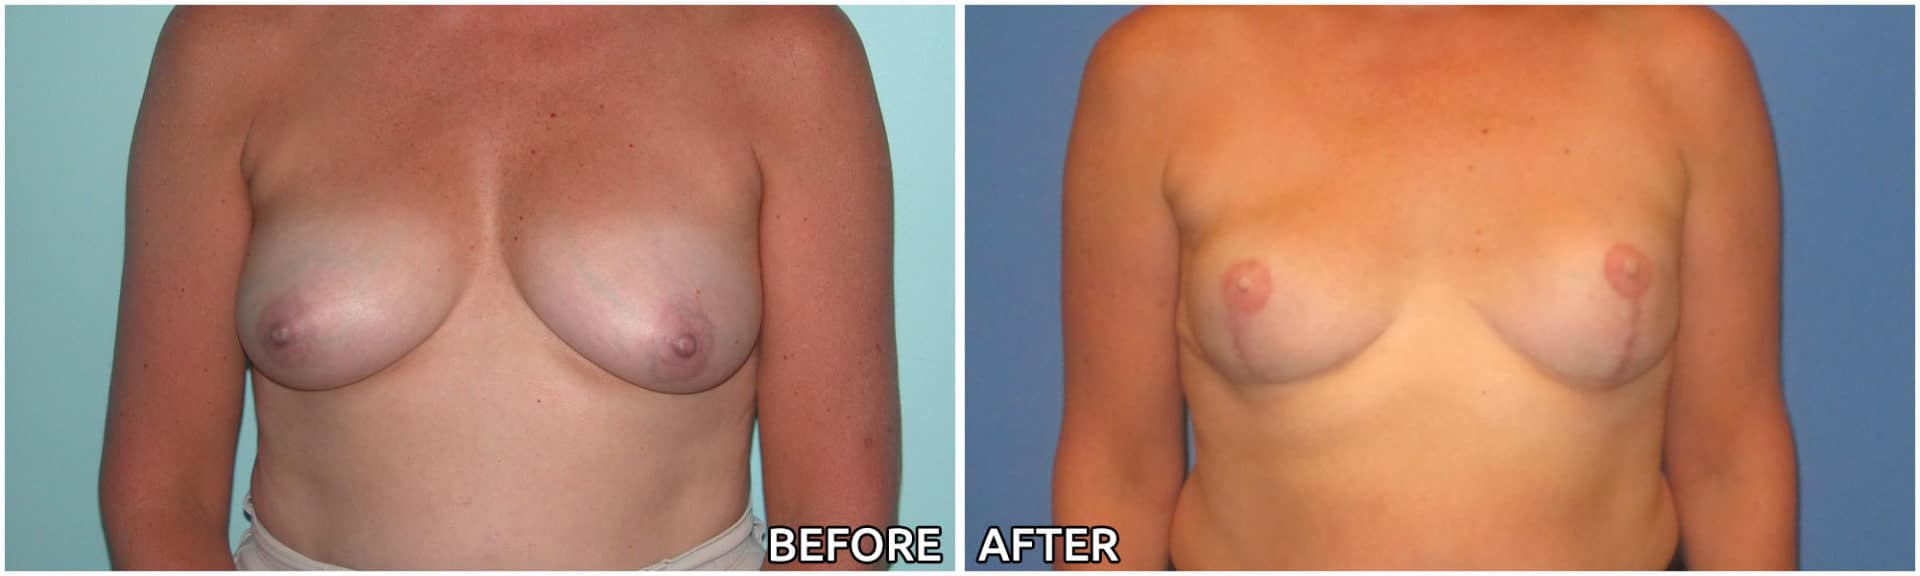 breast-reconstruction6